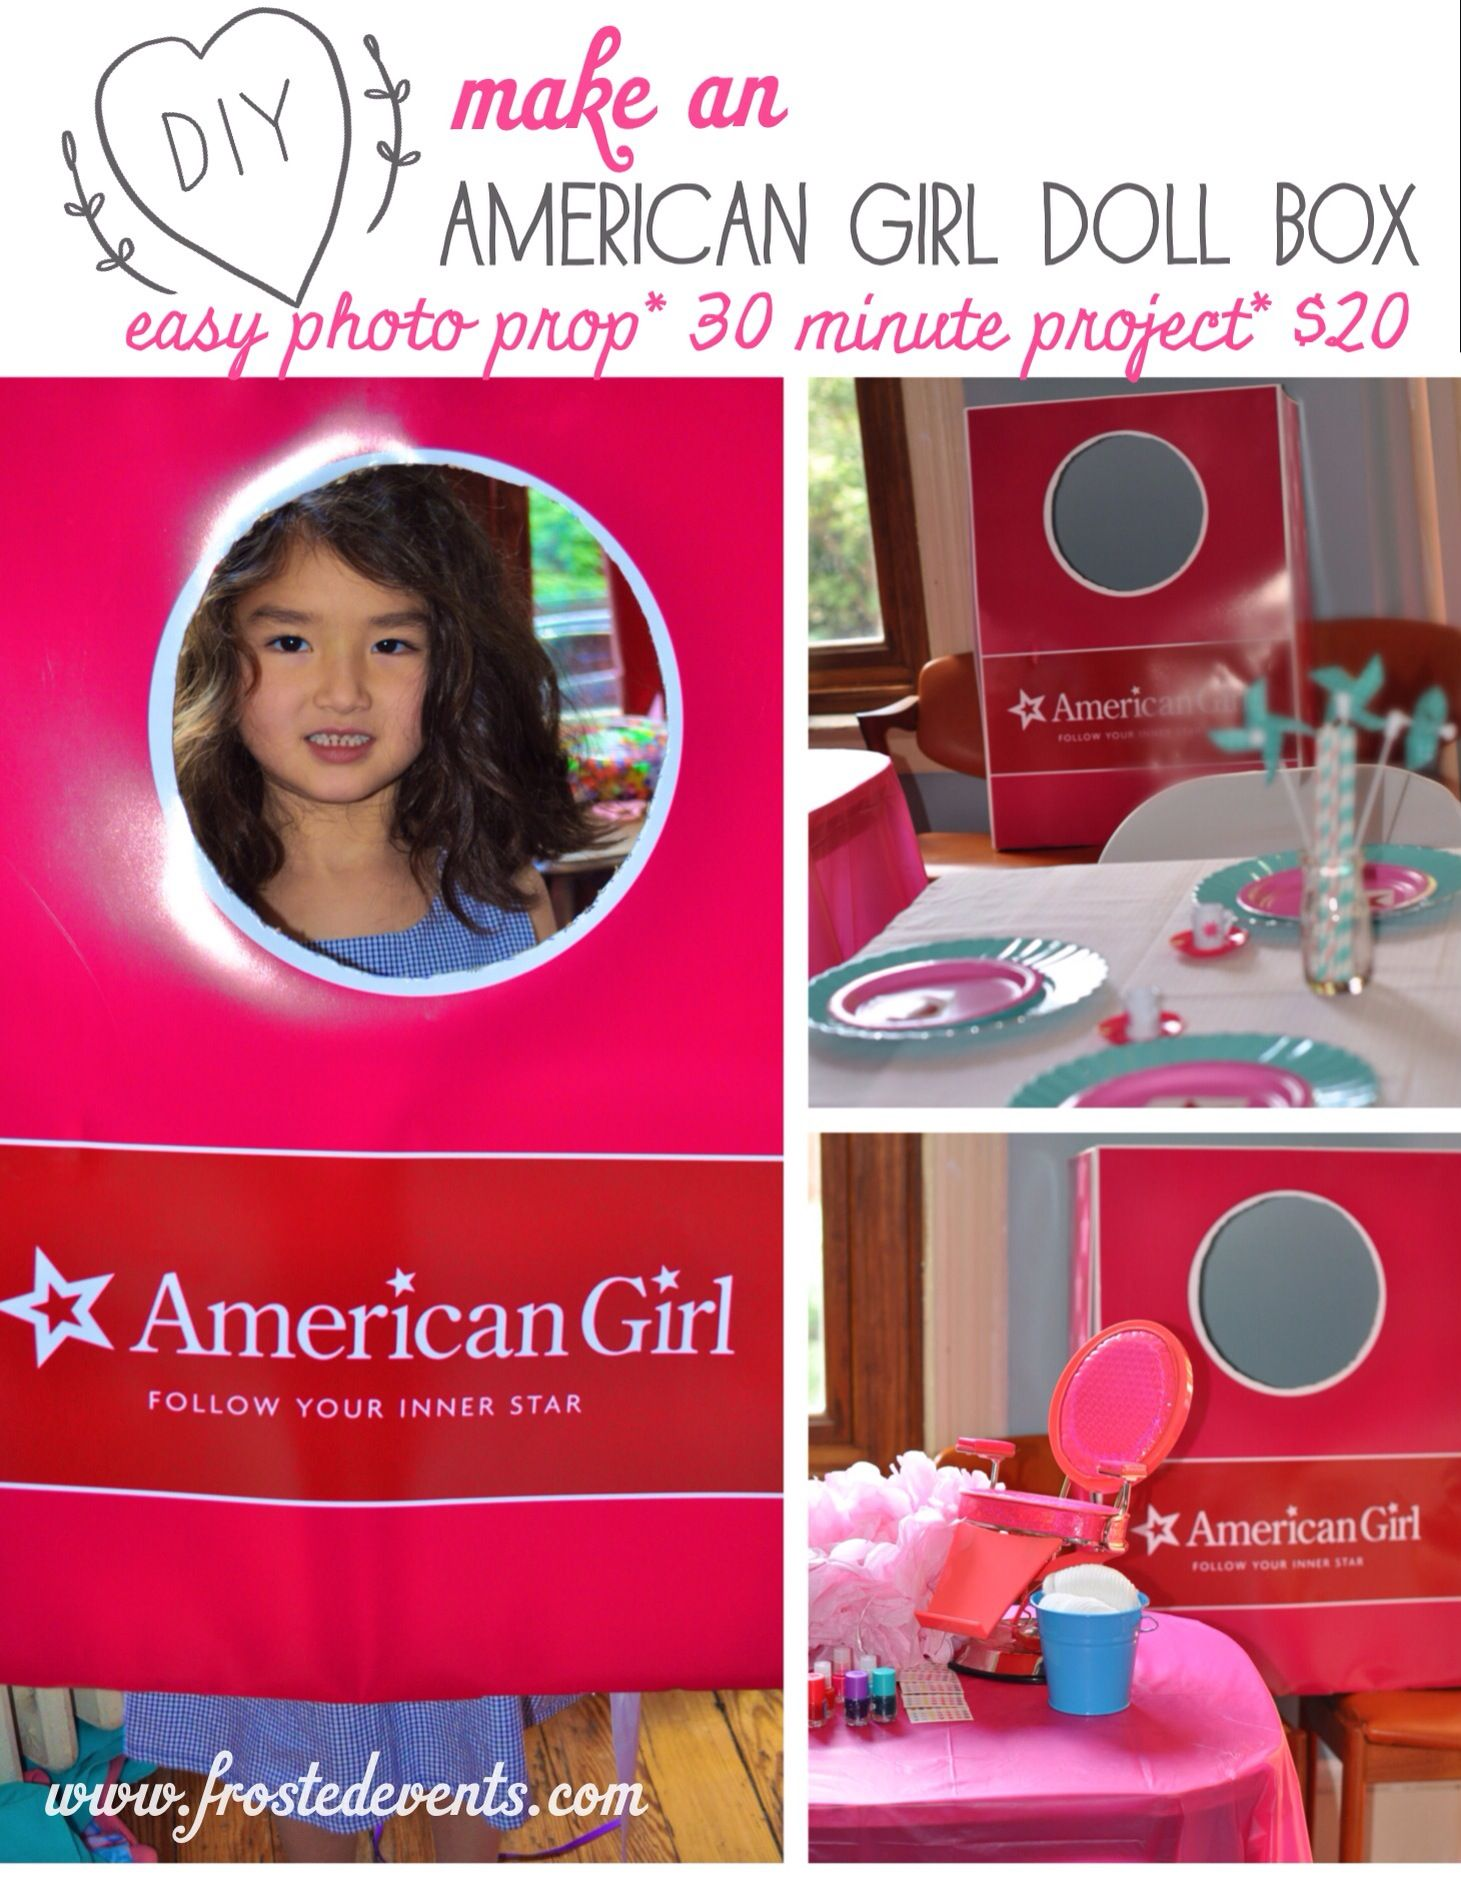 How to make christmas decorations for your ag doll - Diy How To Make American Girl Doll Box Photo Prop Easy Project 30 Minutes